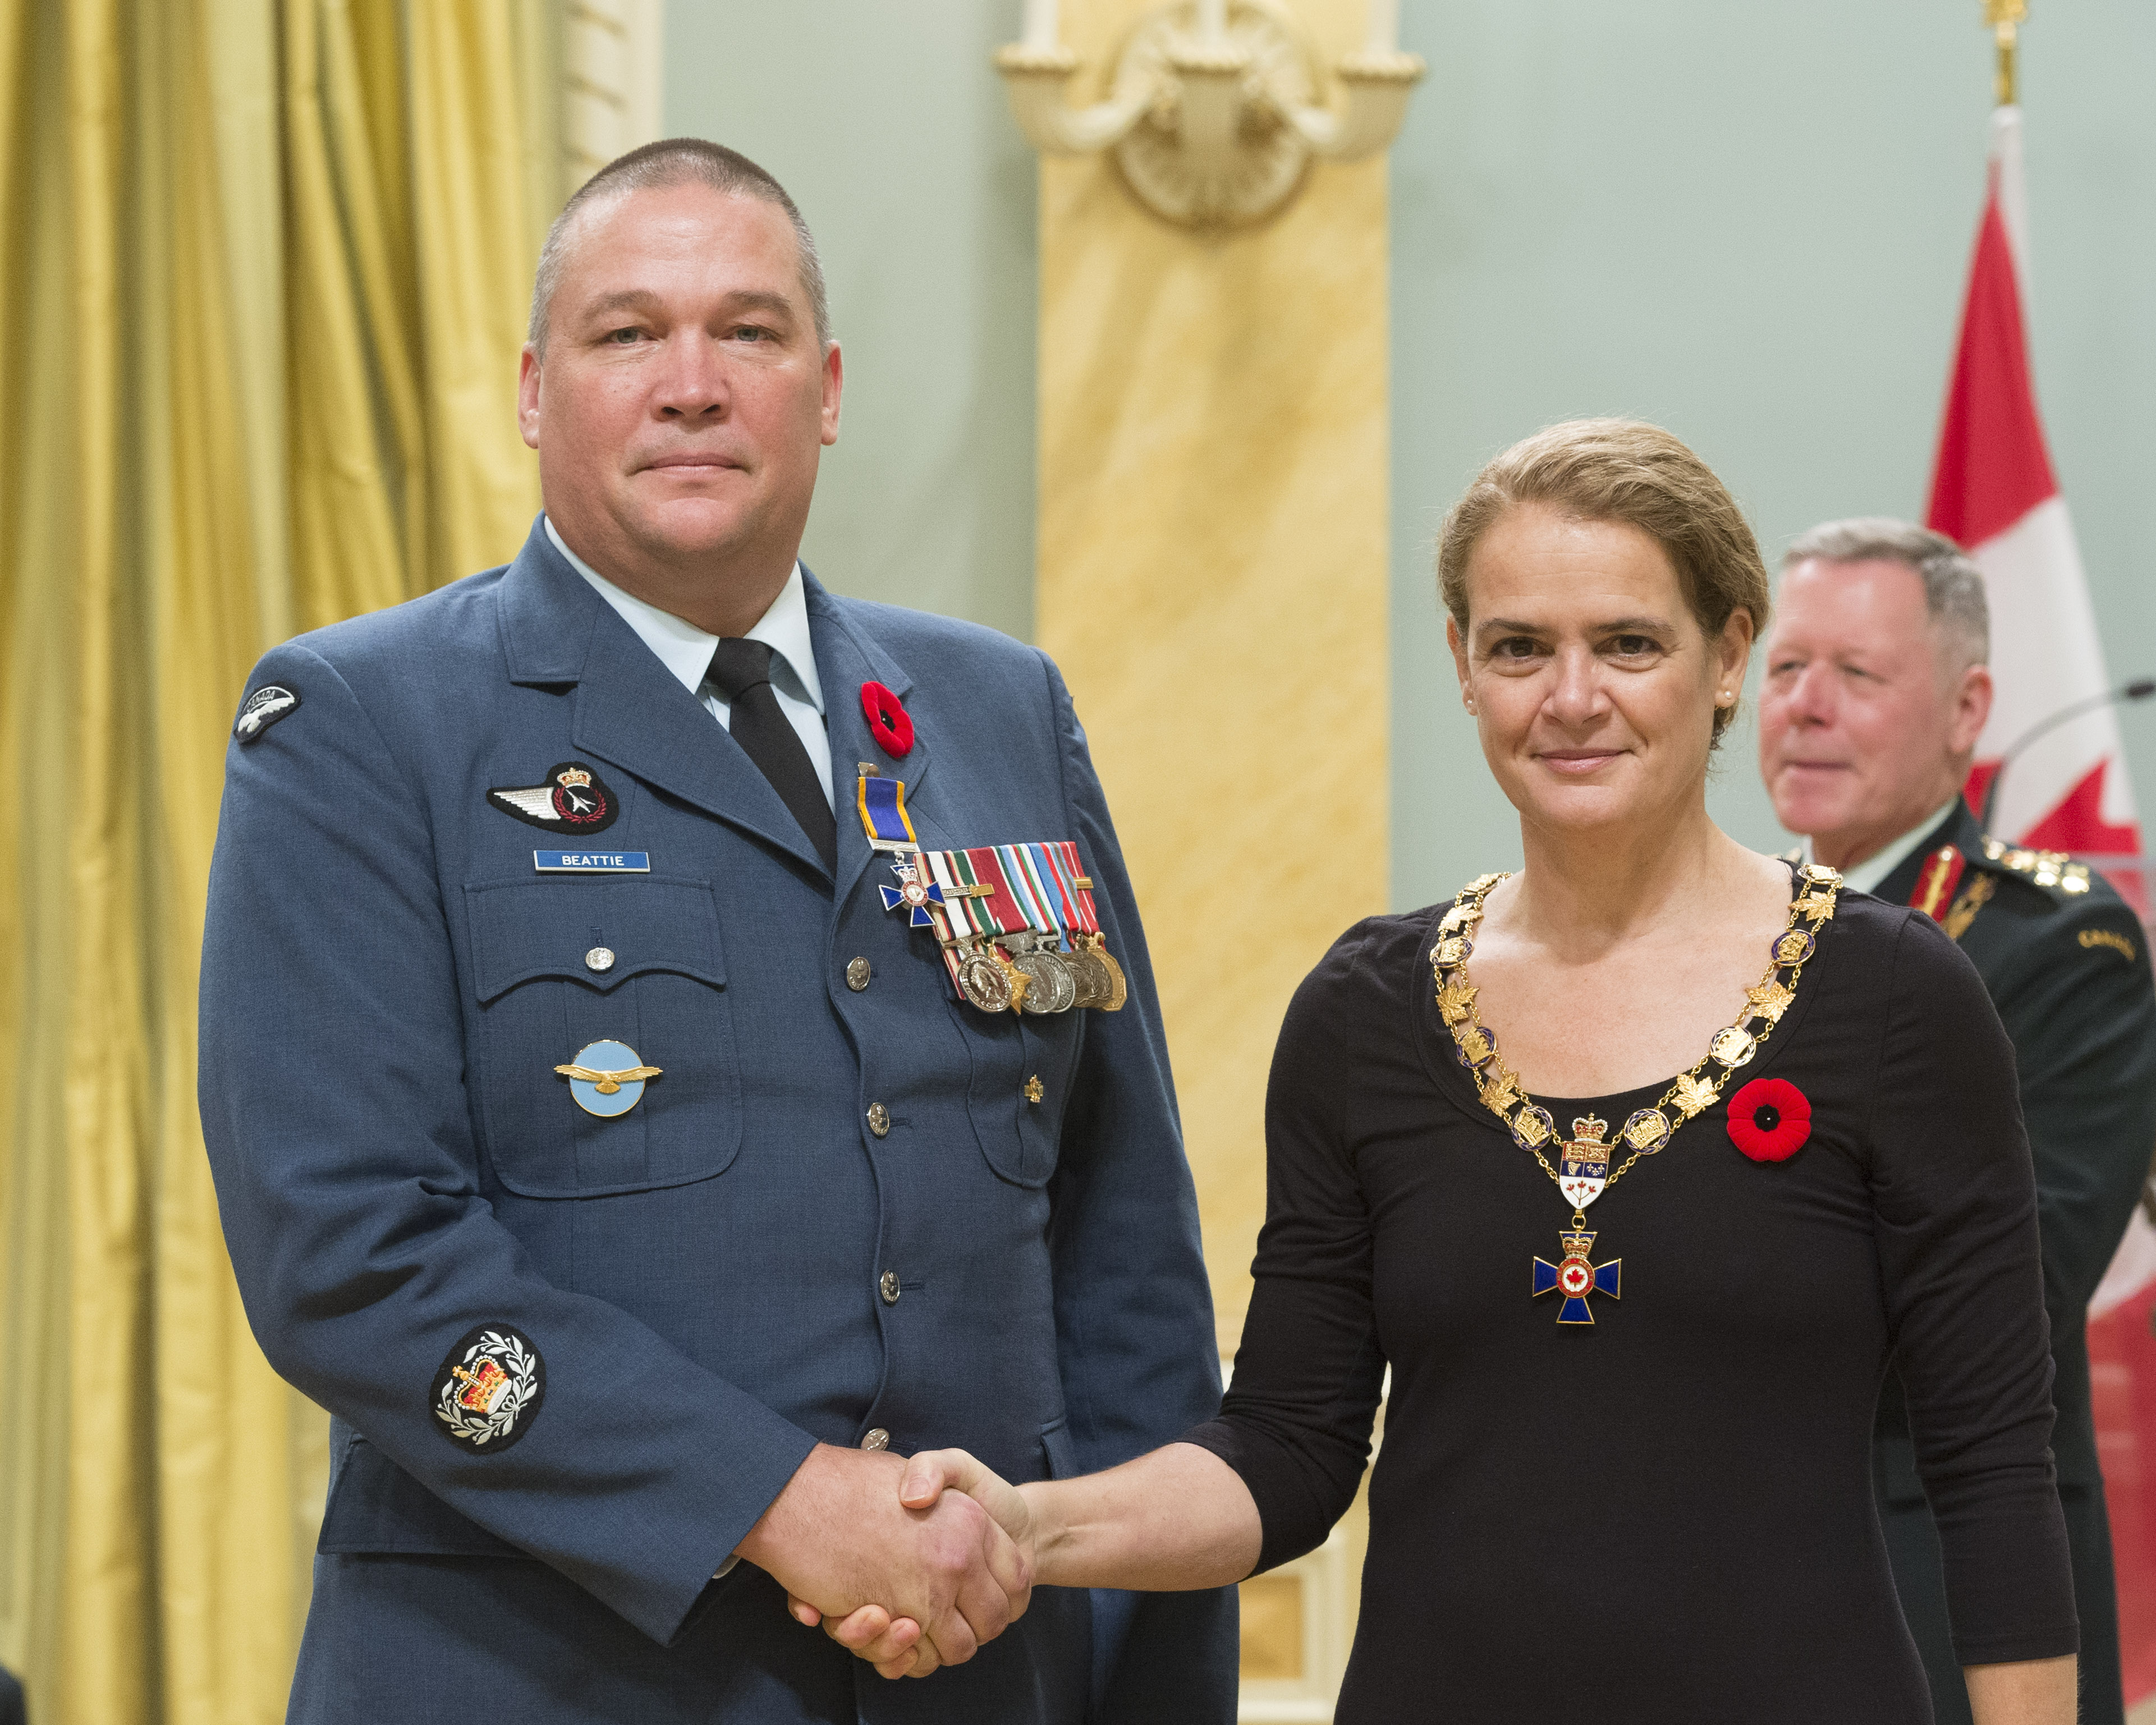 Governor General and Commander-in-Chief of Canada Julie Payette inducts Master Warrant Officer Kevin Grant Beattie, 442 Transport and Rescue Squadron, Lazo, British Columbia, into the Order of Military Merit at Rideau Hall on November 10, 2017. PHOTO: Sergeant Johanie Maheu, Rideau Hall © OSGG, GG05-2017-0395-027